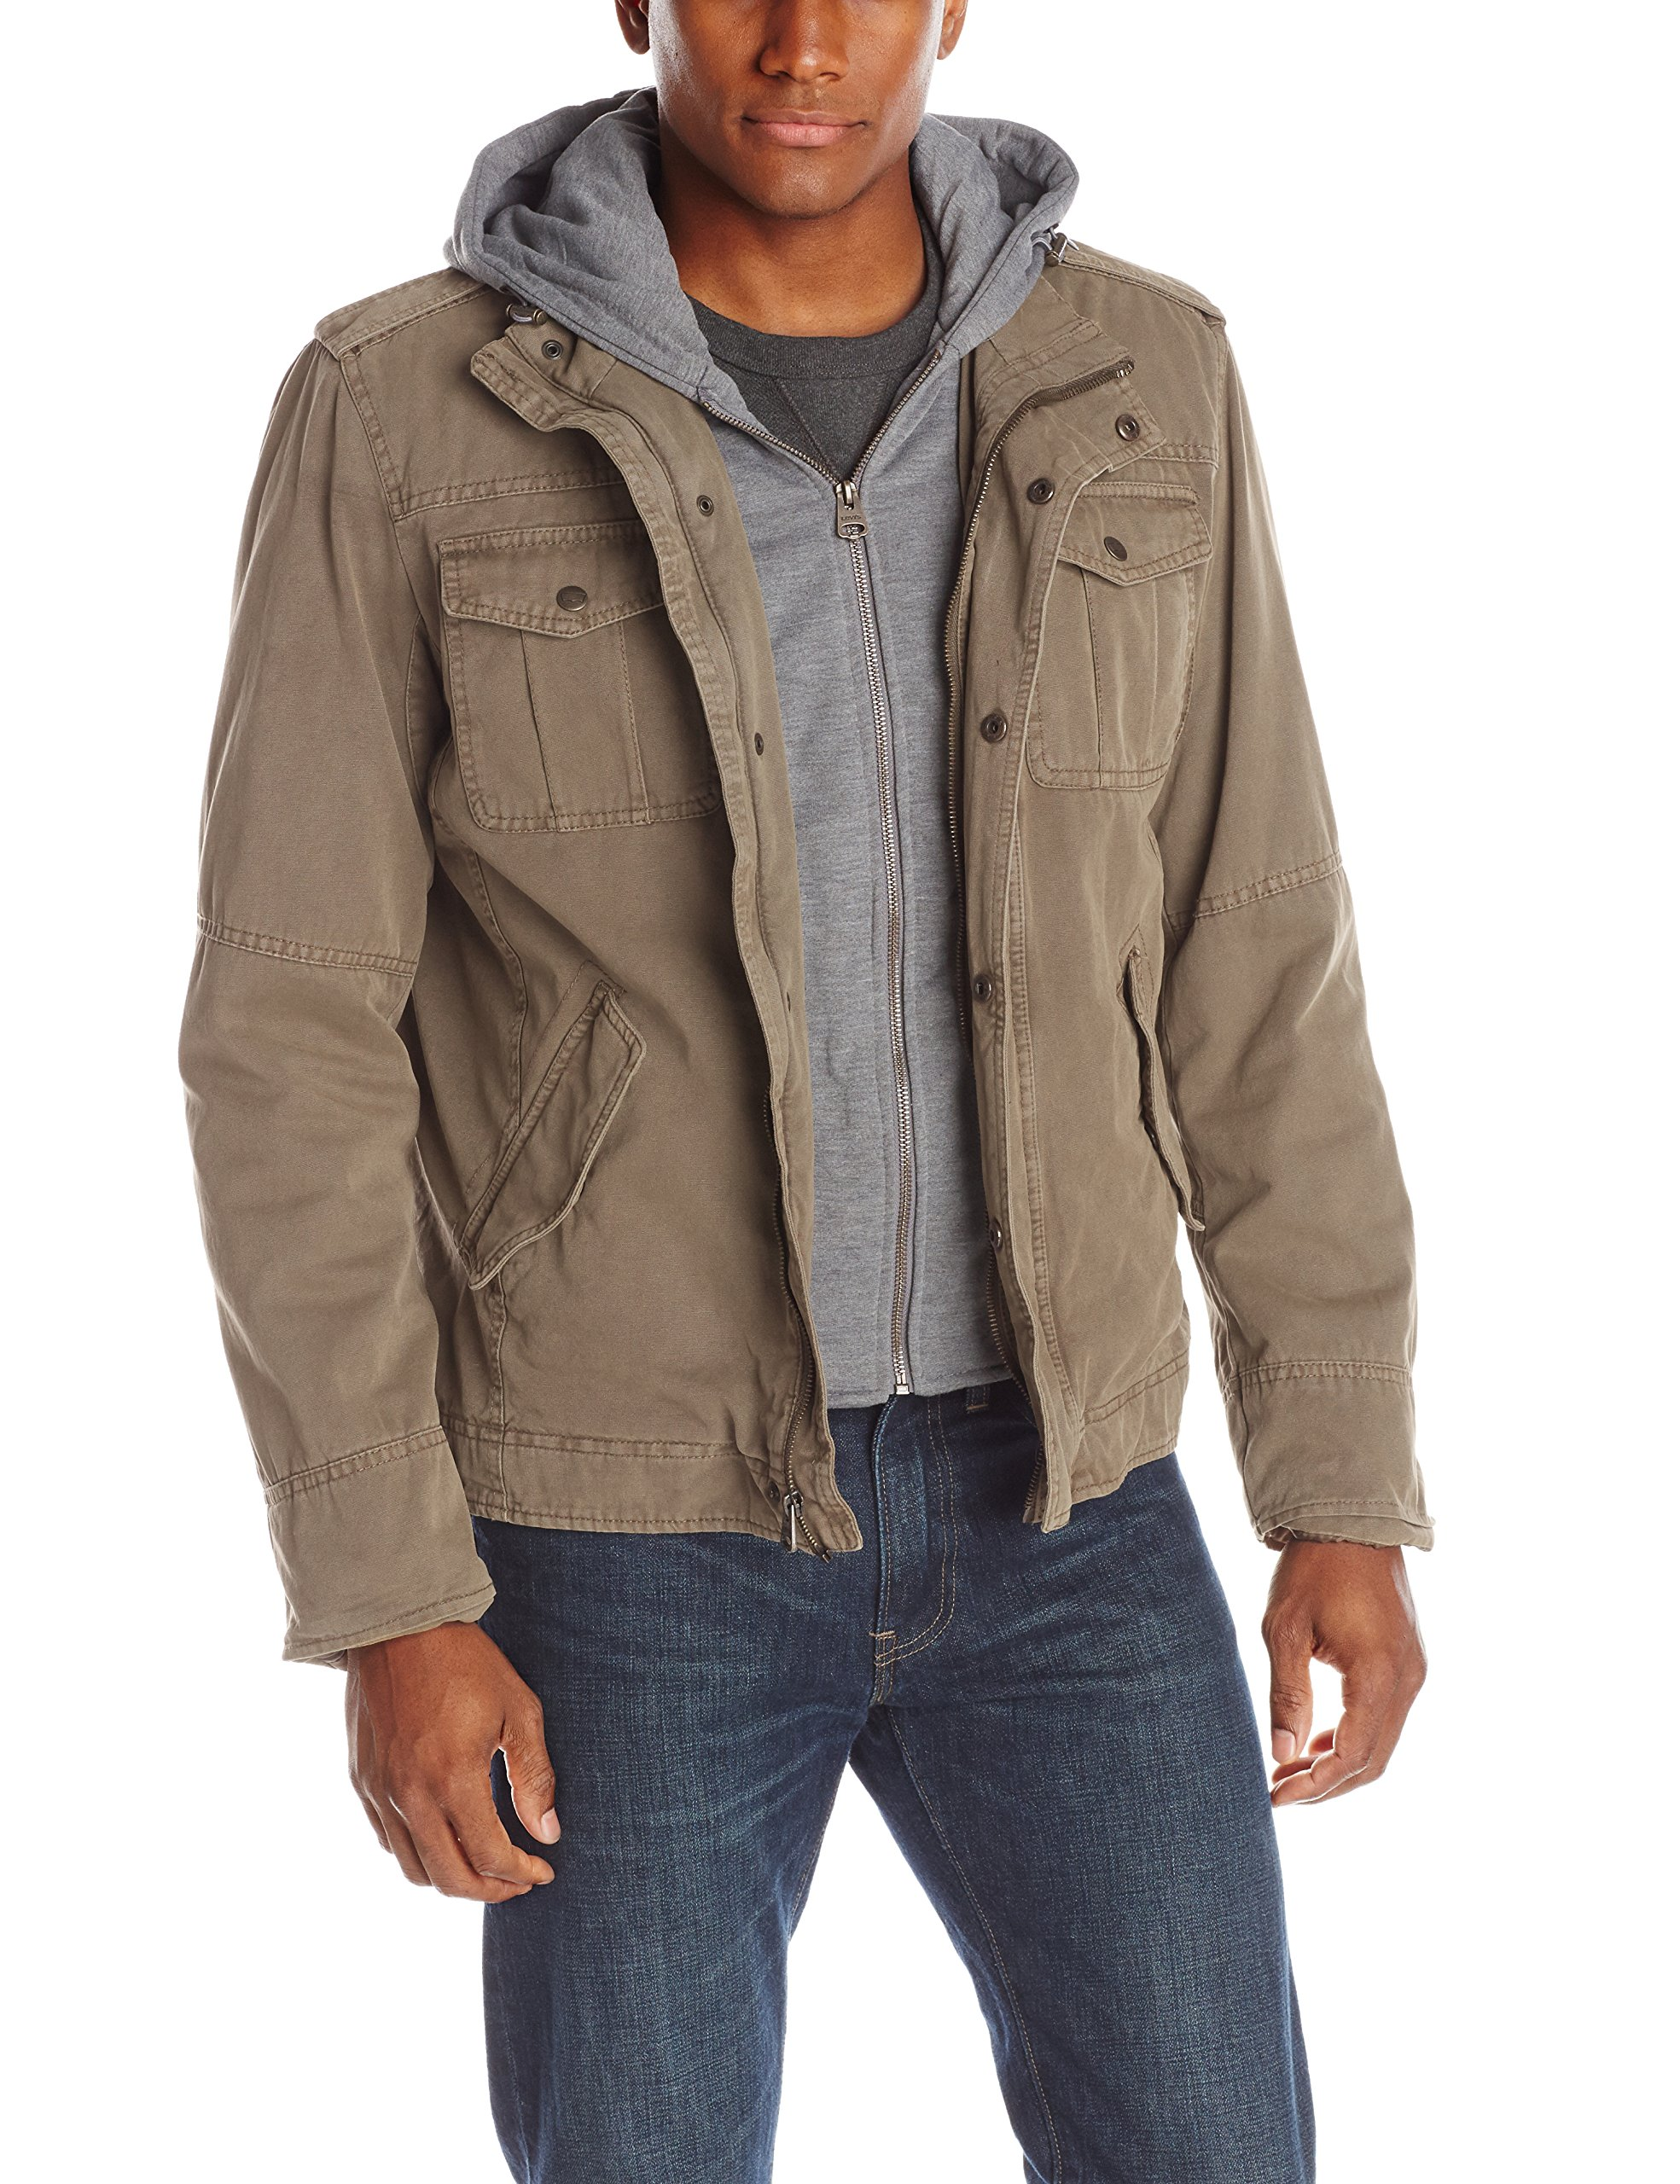 Levi's Men's Four-Pocket Hooded Jacket,Khaki,X-Large